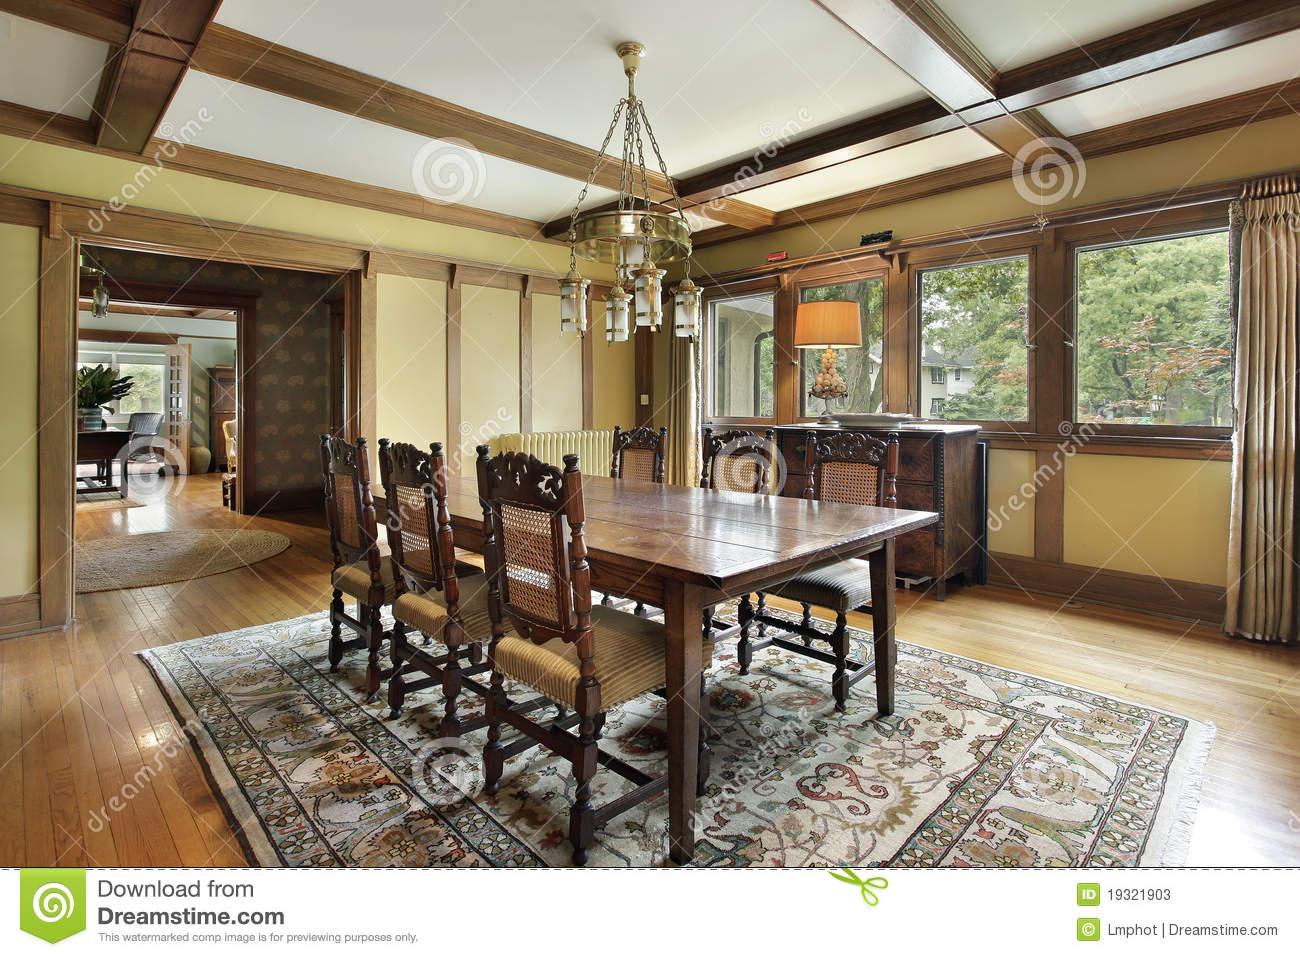 Dining Room With Wood Beam Ceilings Stock Image Image